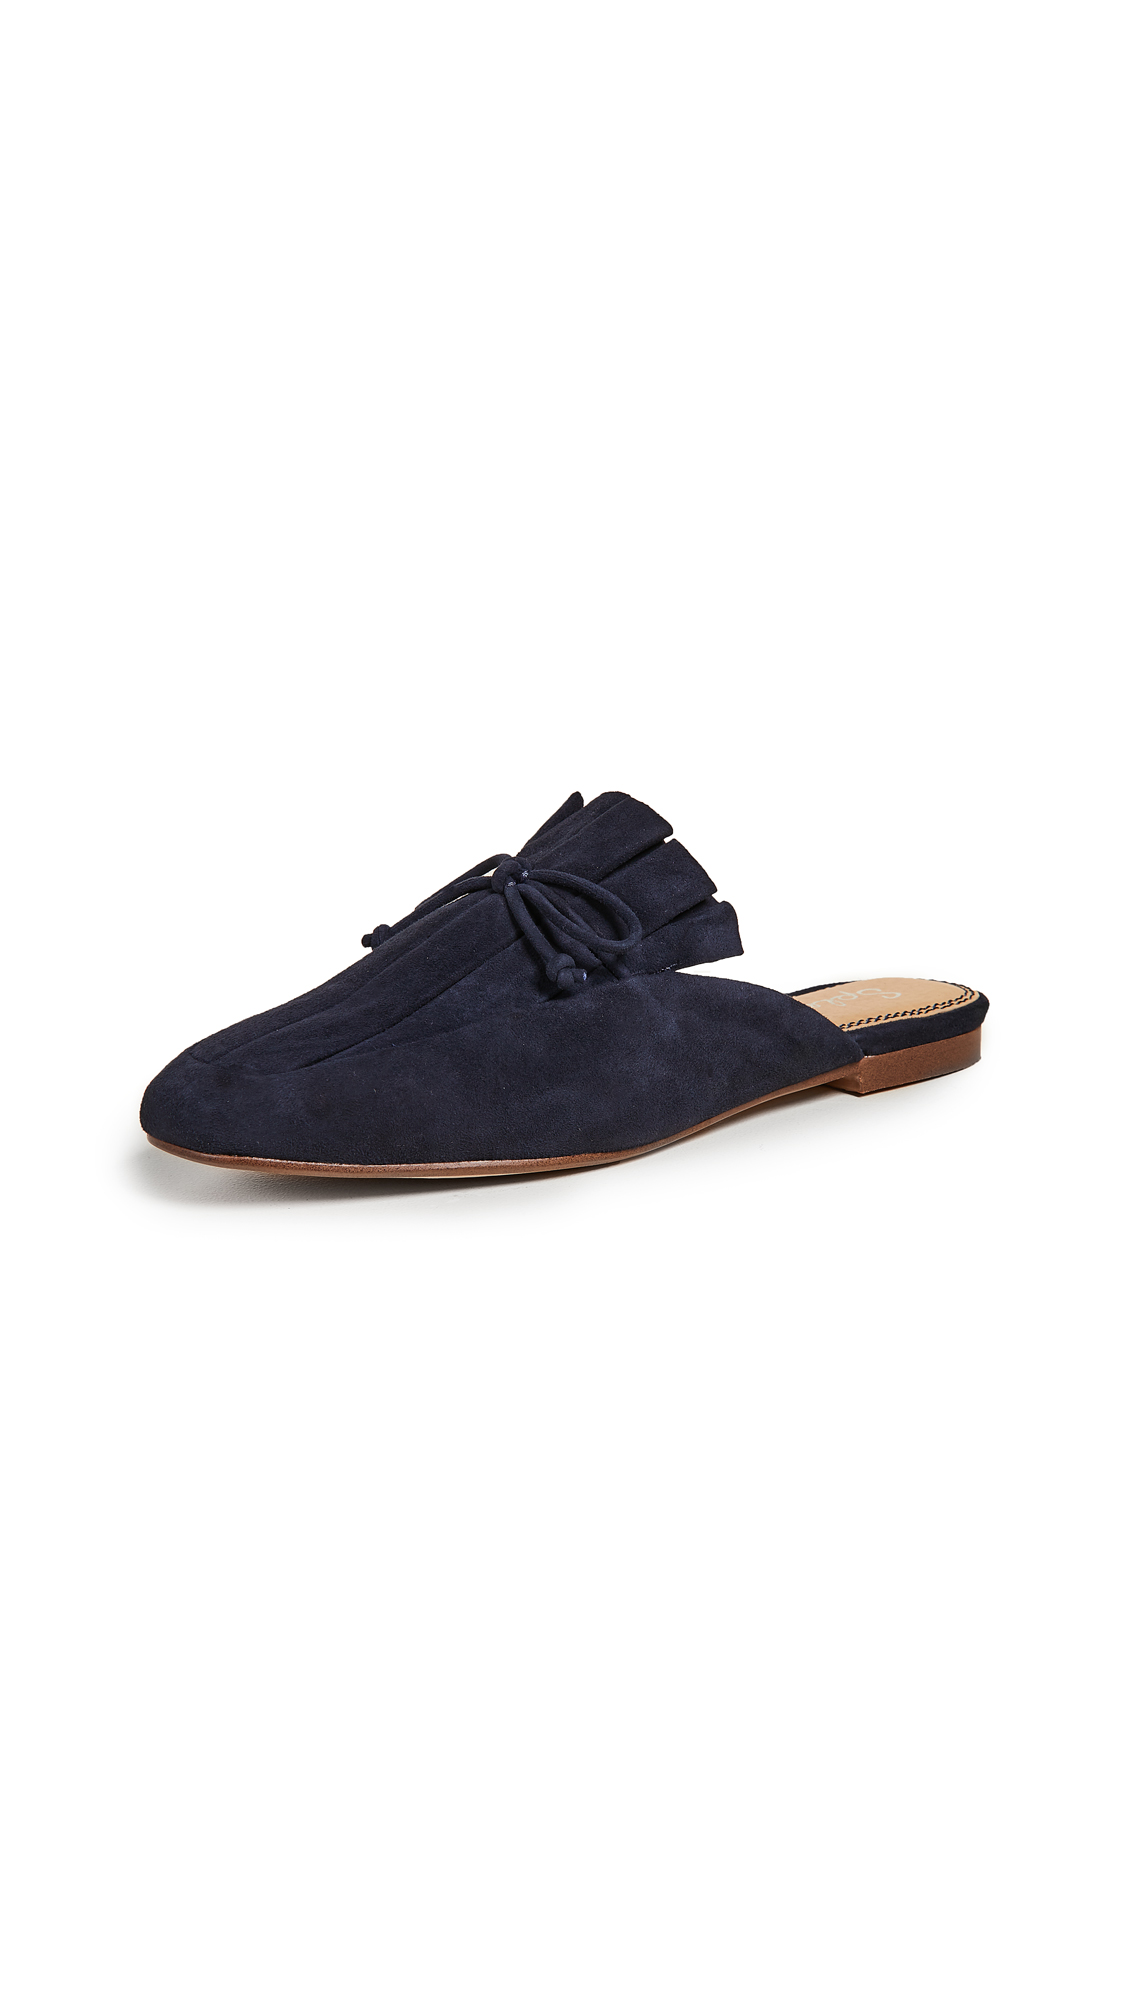 Splendid Chandler Mules - Navy